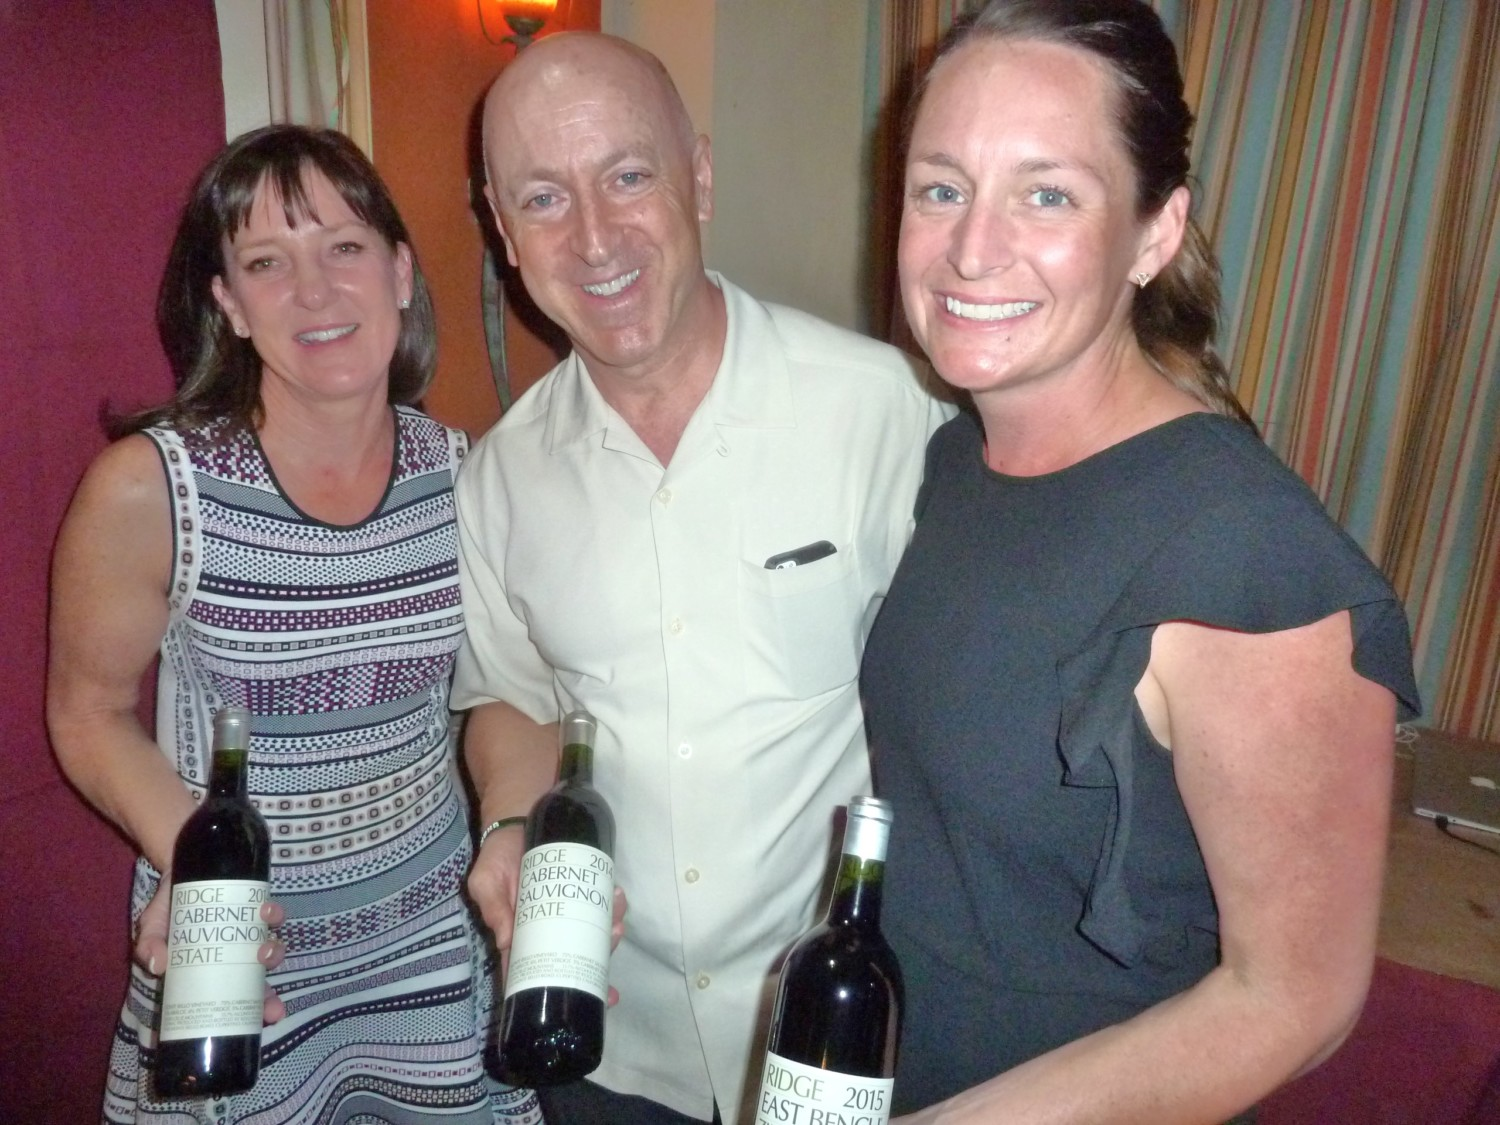 Taste of Wine: Orfila is San Diego's most acclaimed winery